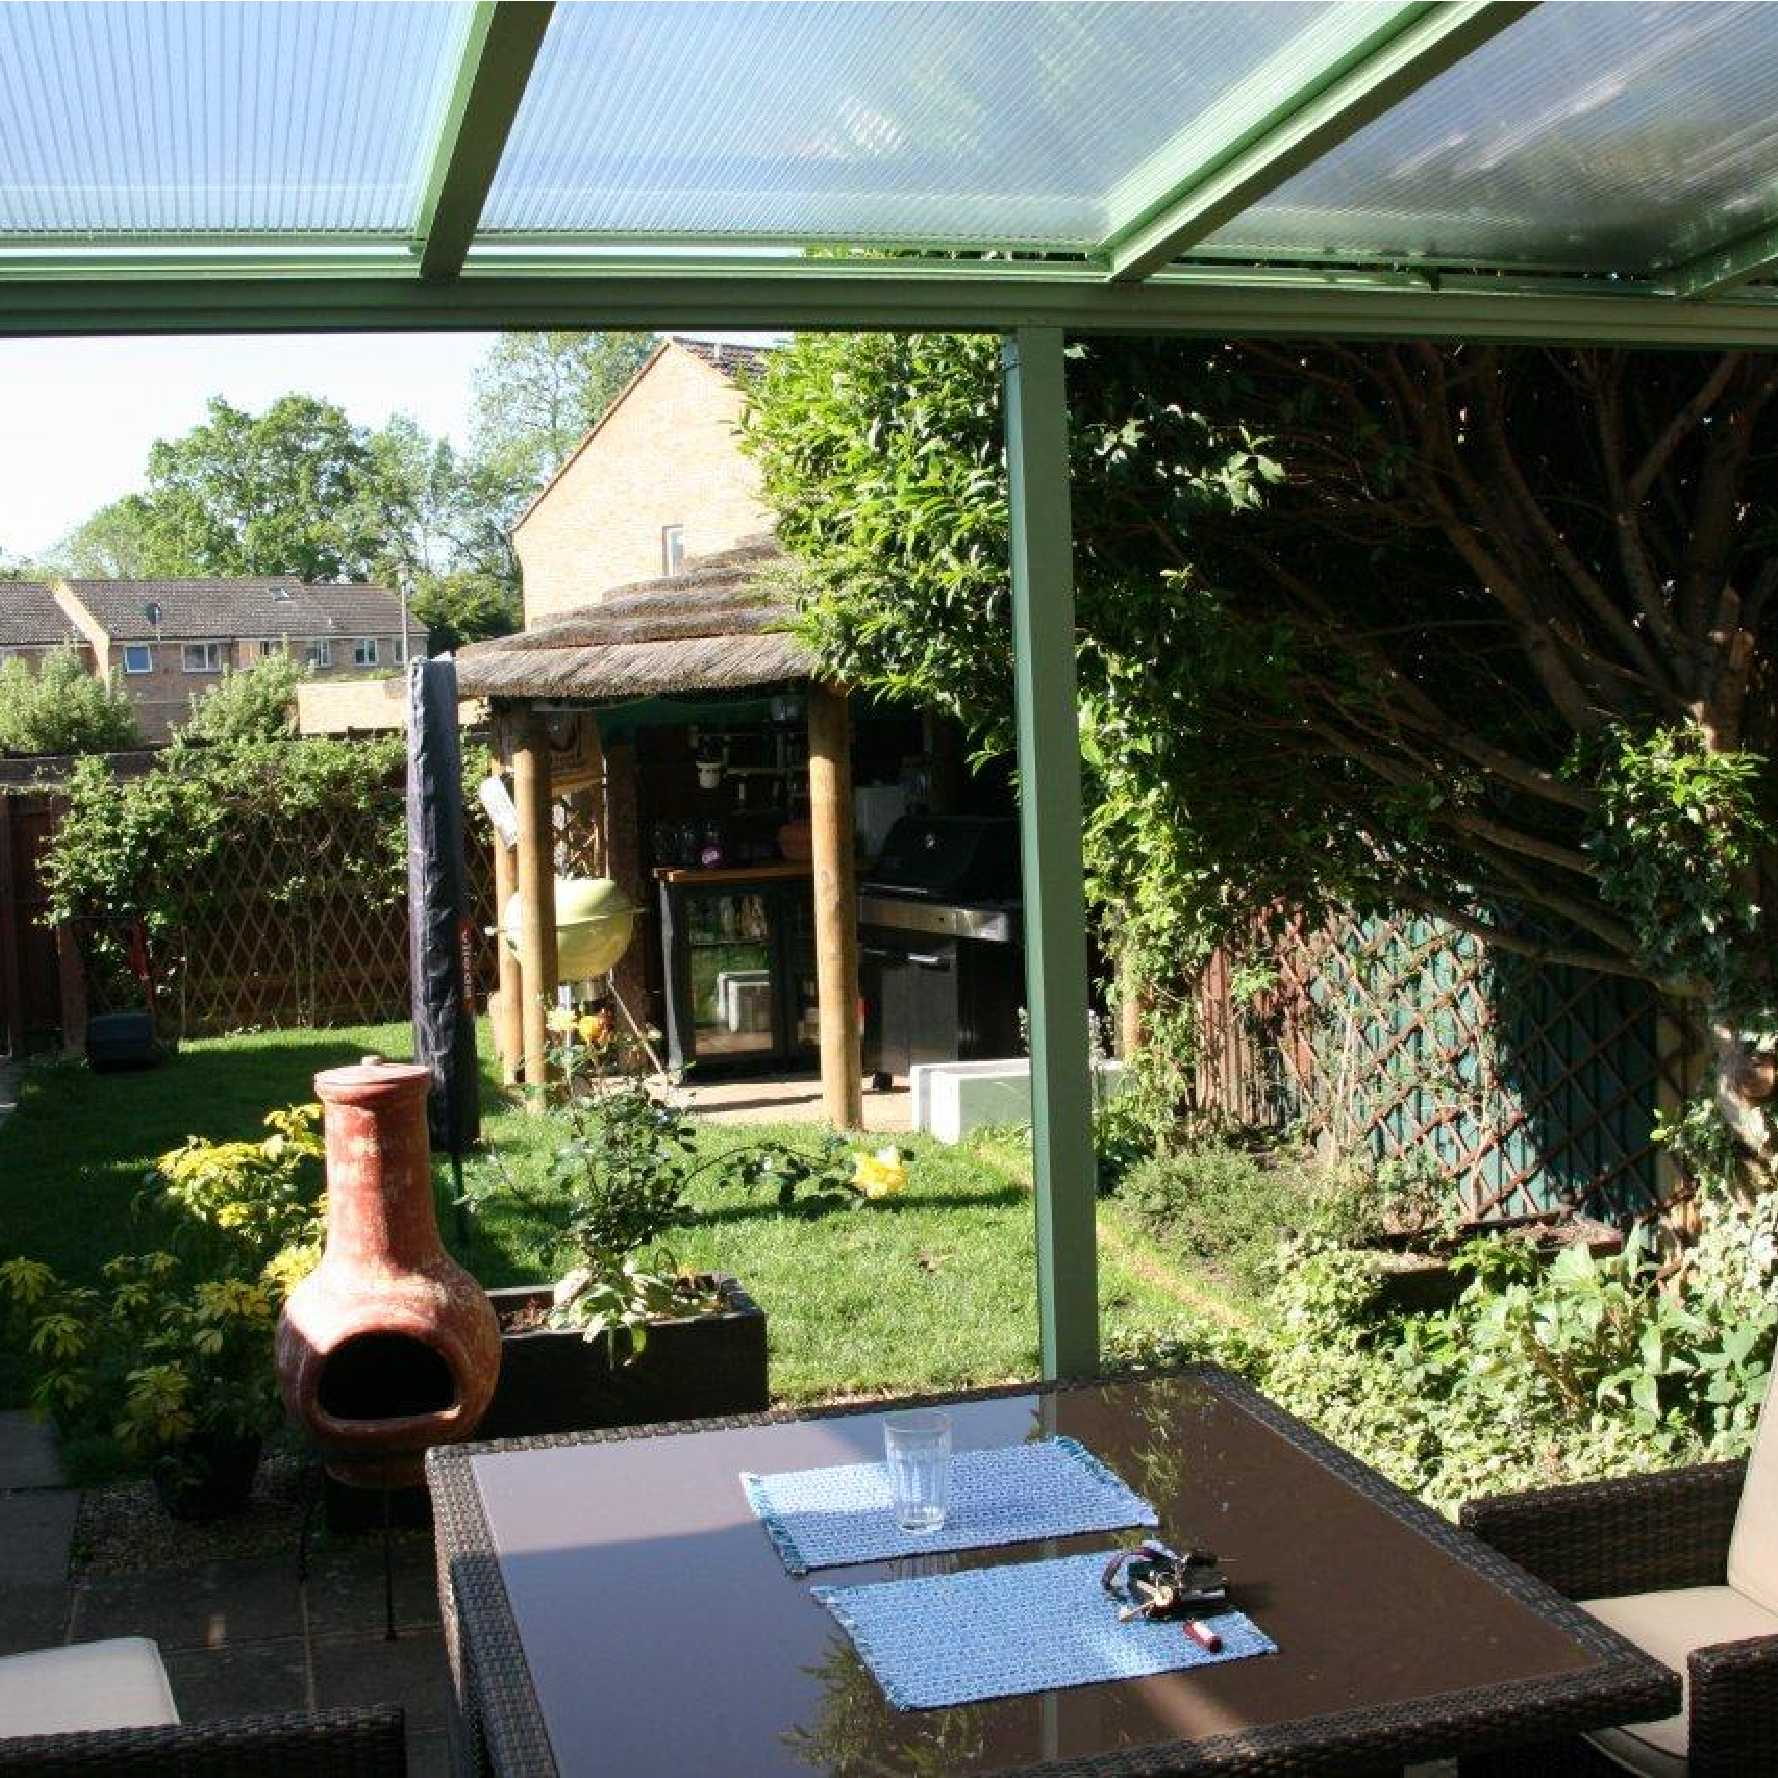 Affordable Omega Smart White Lean-To Canopy with 16mm Polycarbonate Glazing - 10.6m (W) x 2.5m (P), (5) Supporting Posts